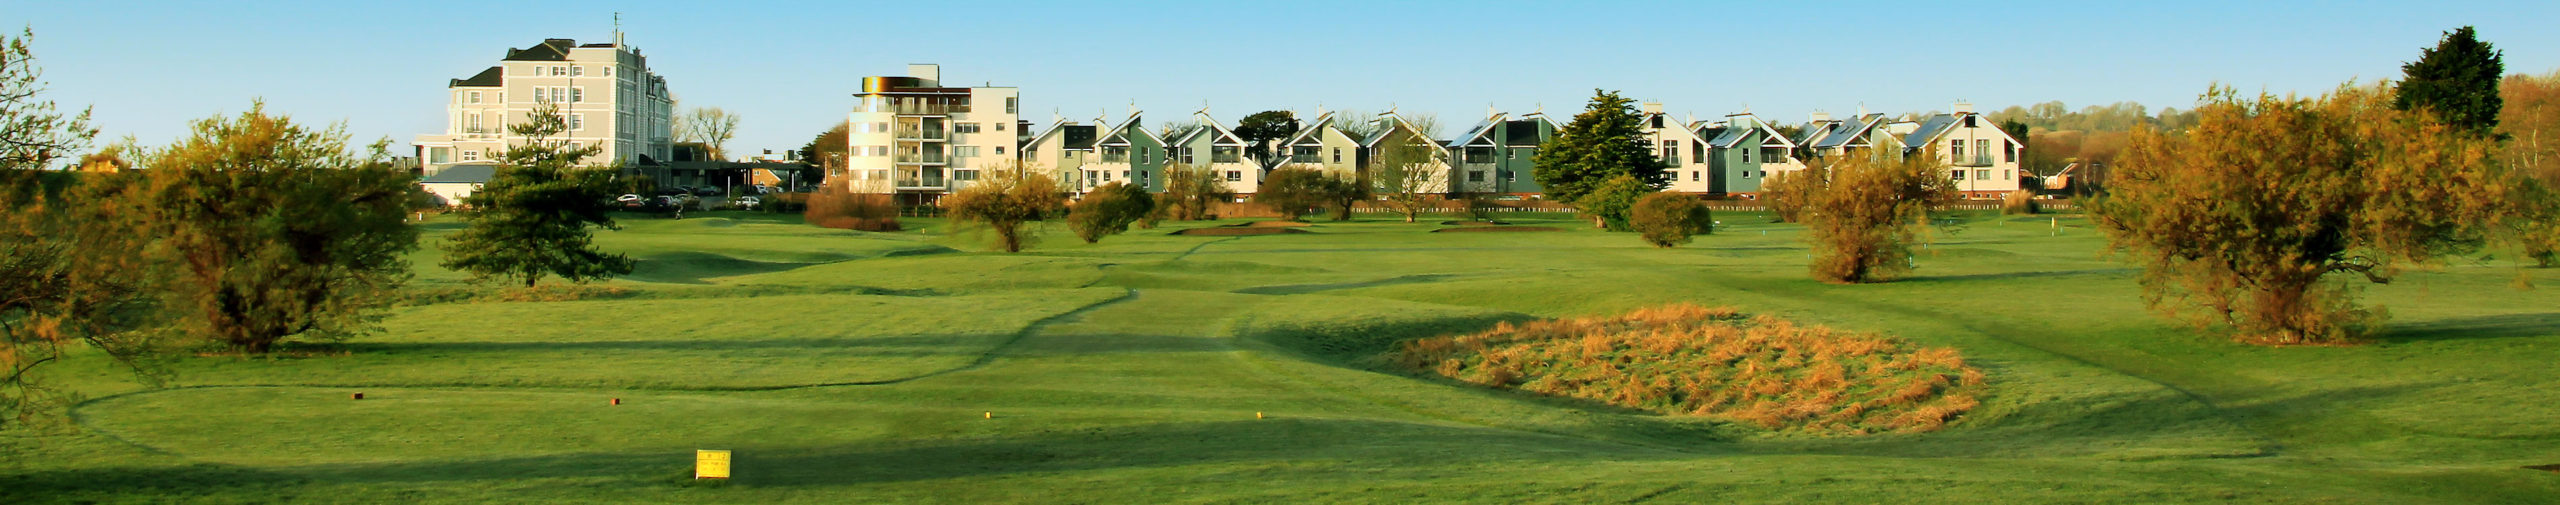 hythe-golf-club-kent-stay-and-play